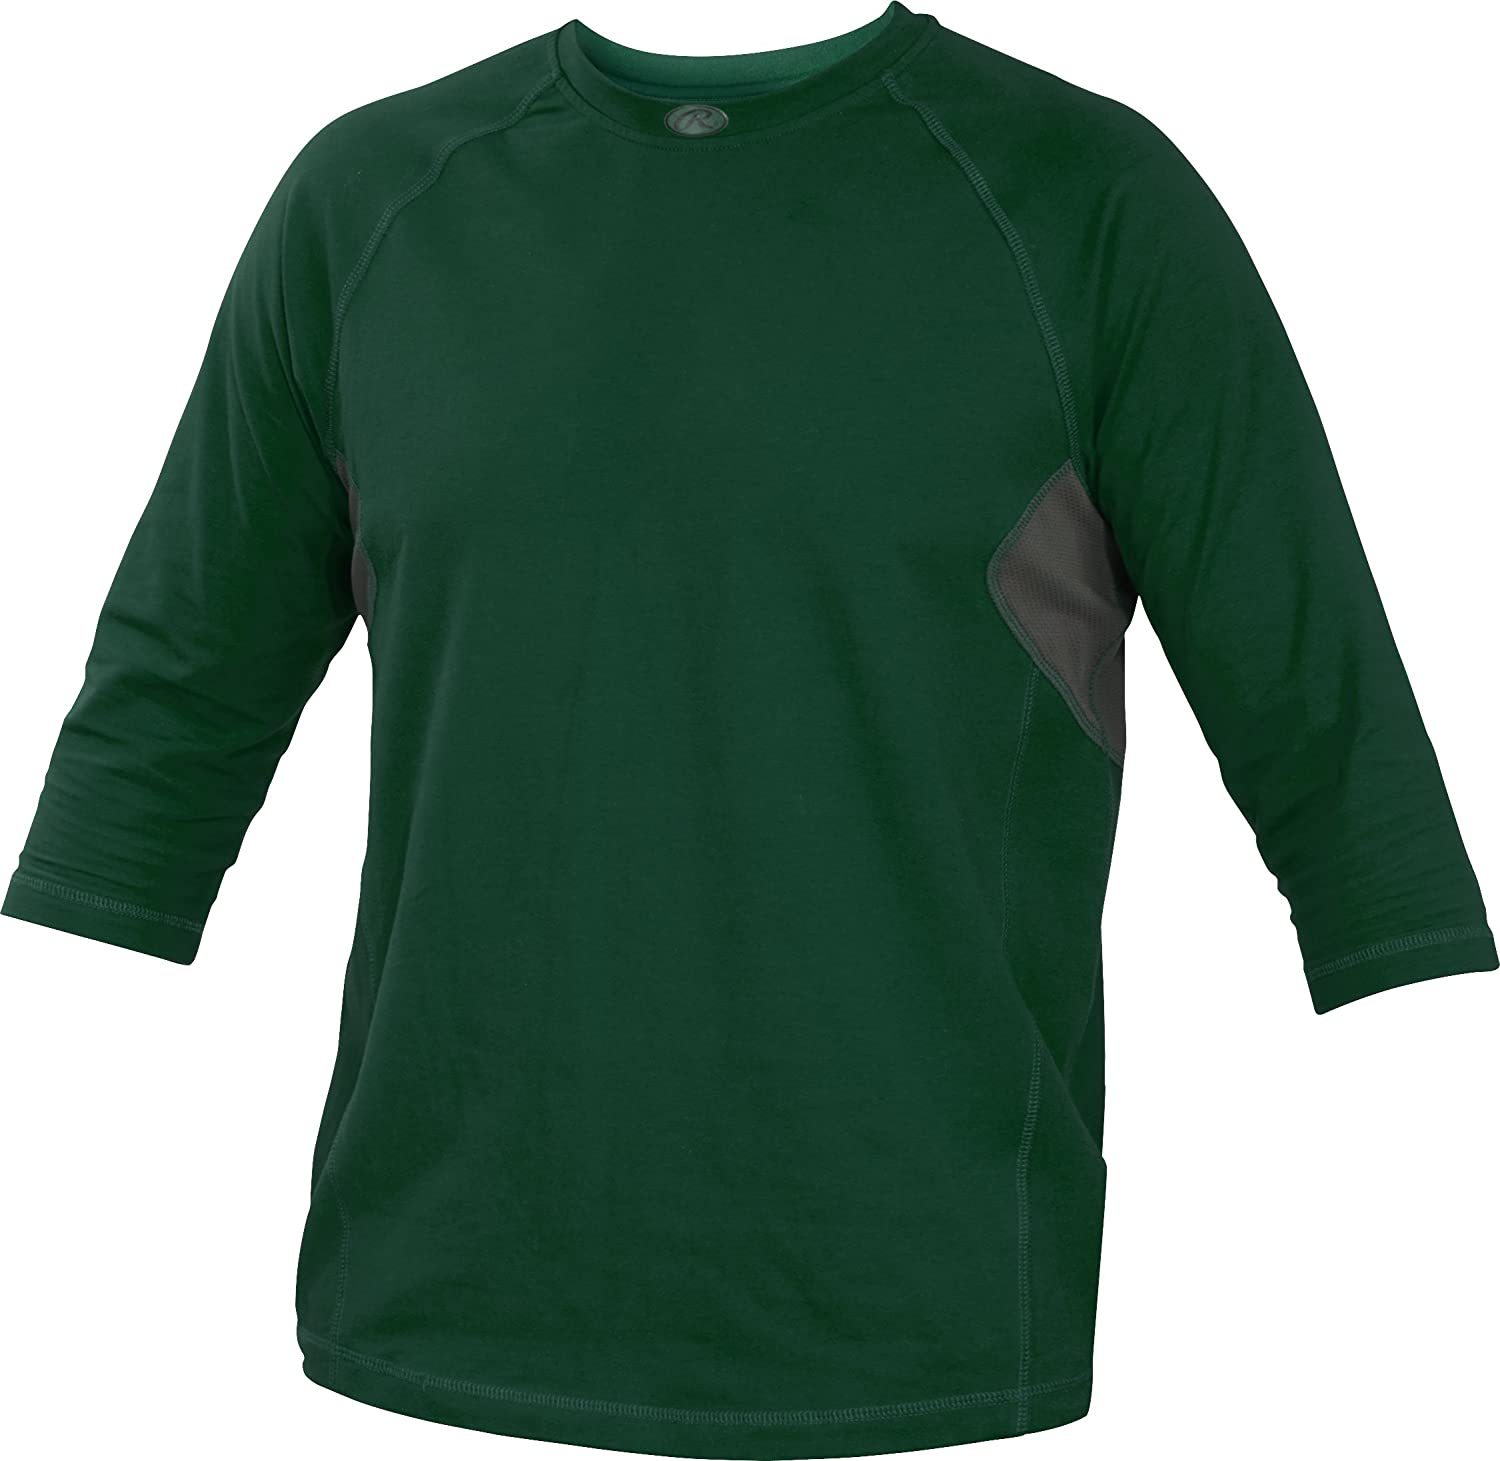 Rawlings Sporting Goods Adult 3/4 Sleeve Performance Shirt RS34